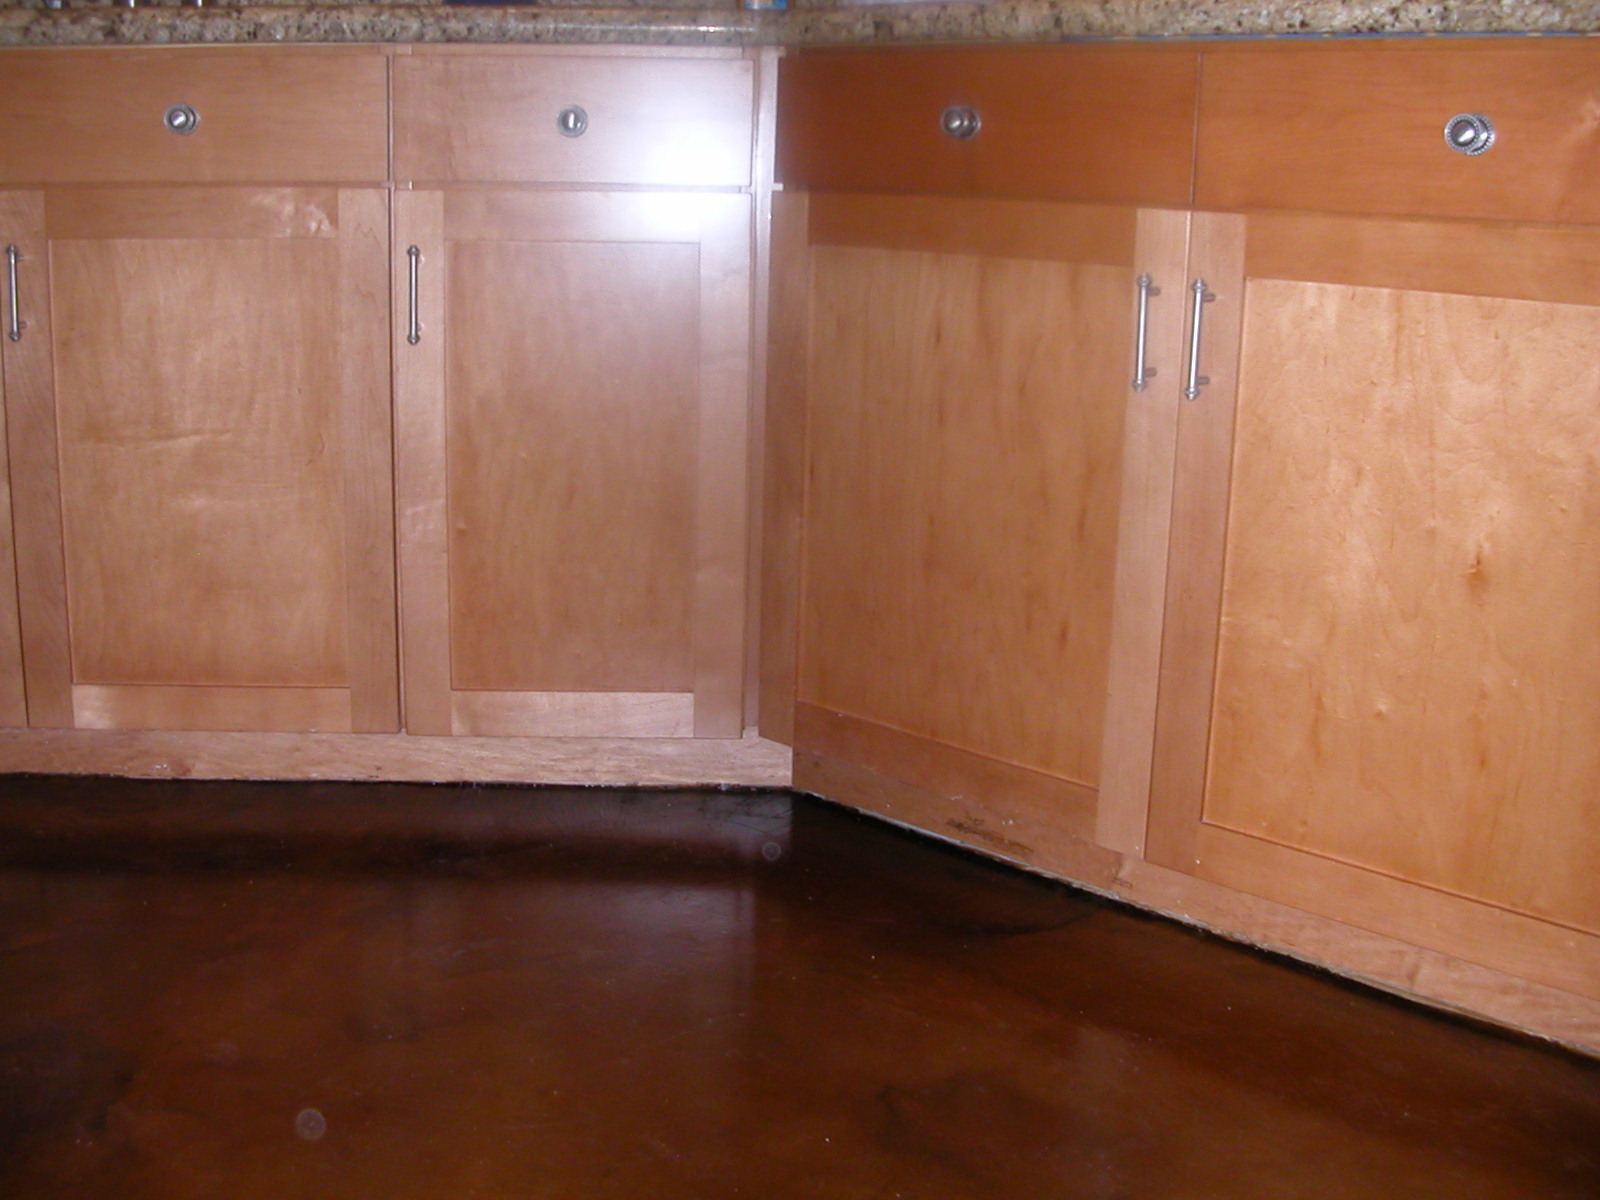 Contrast of floors to cabinets (not a great photo)